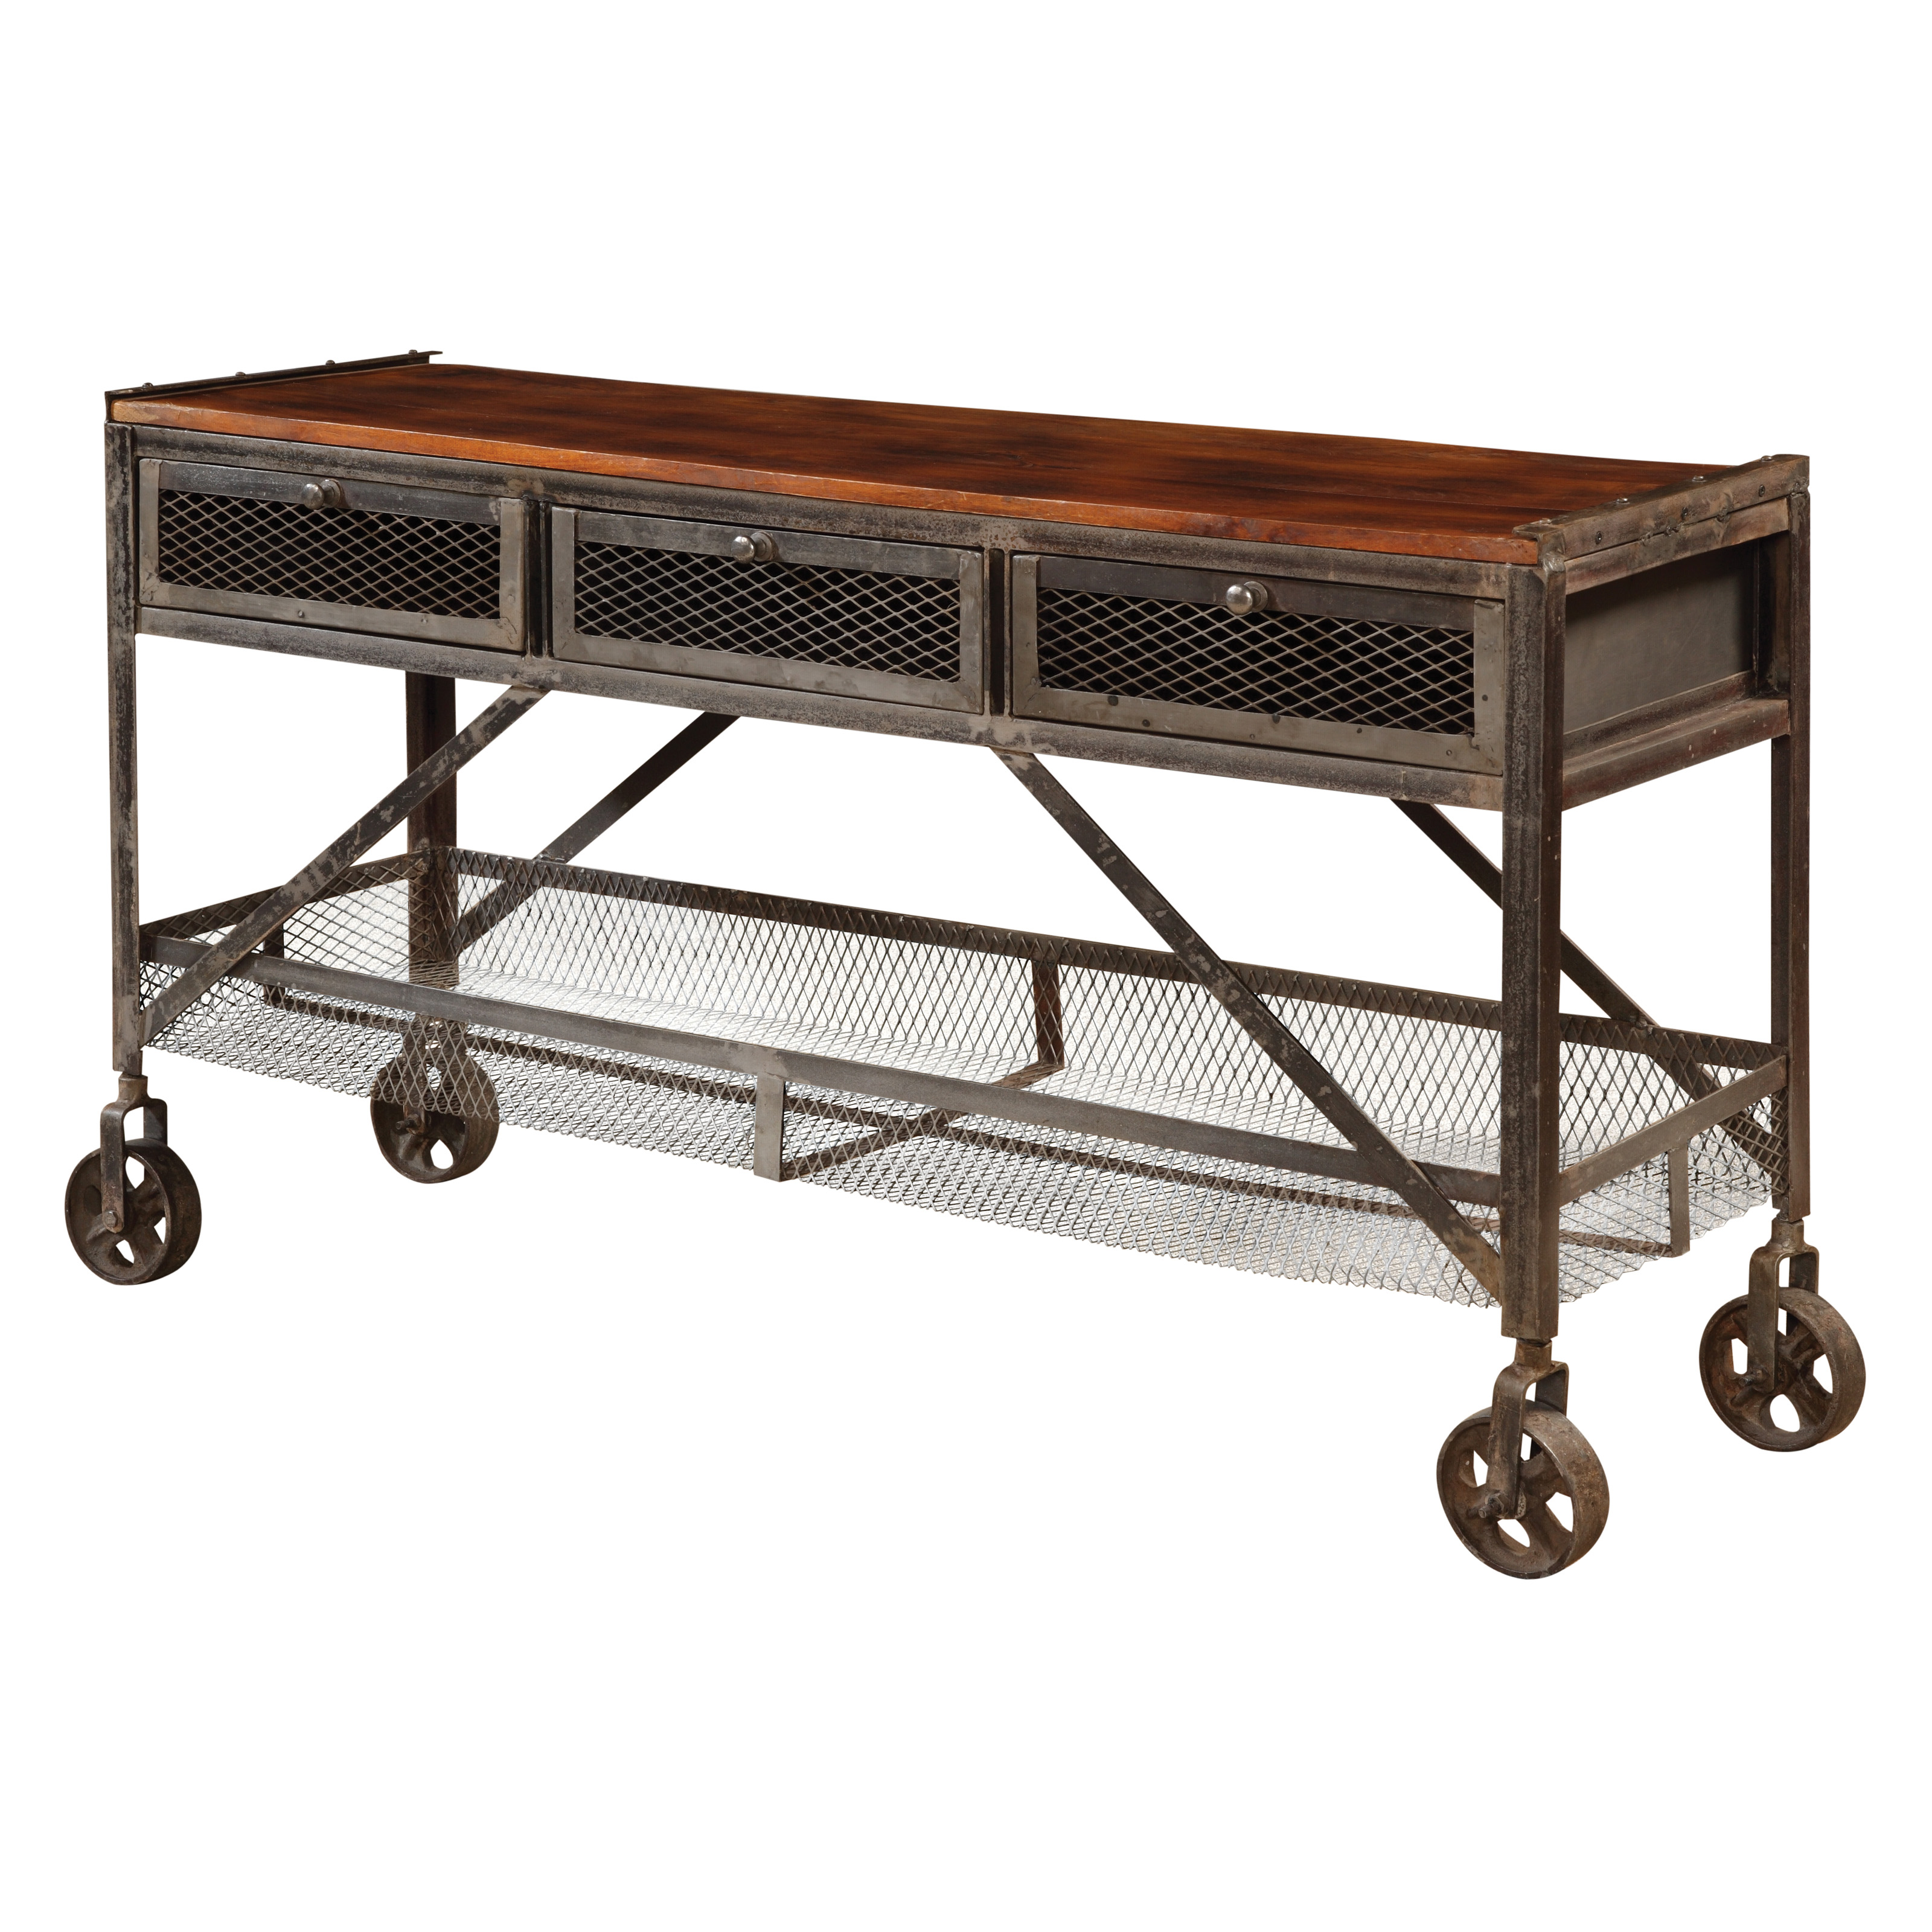 Sofa table on wheels images rustic with